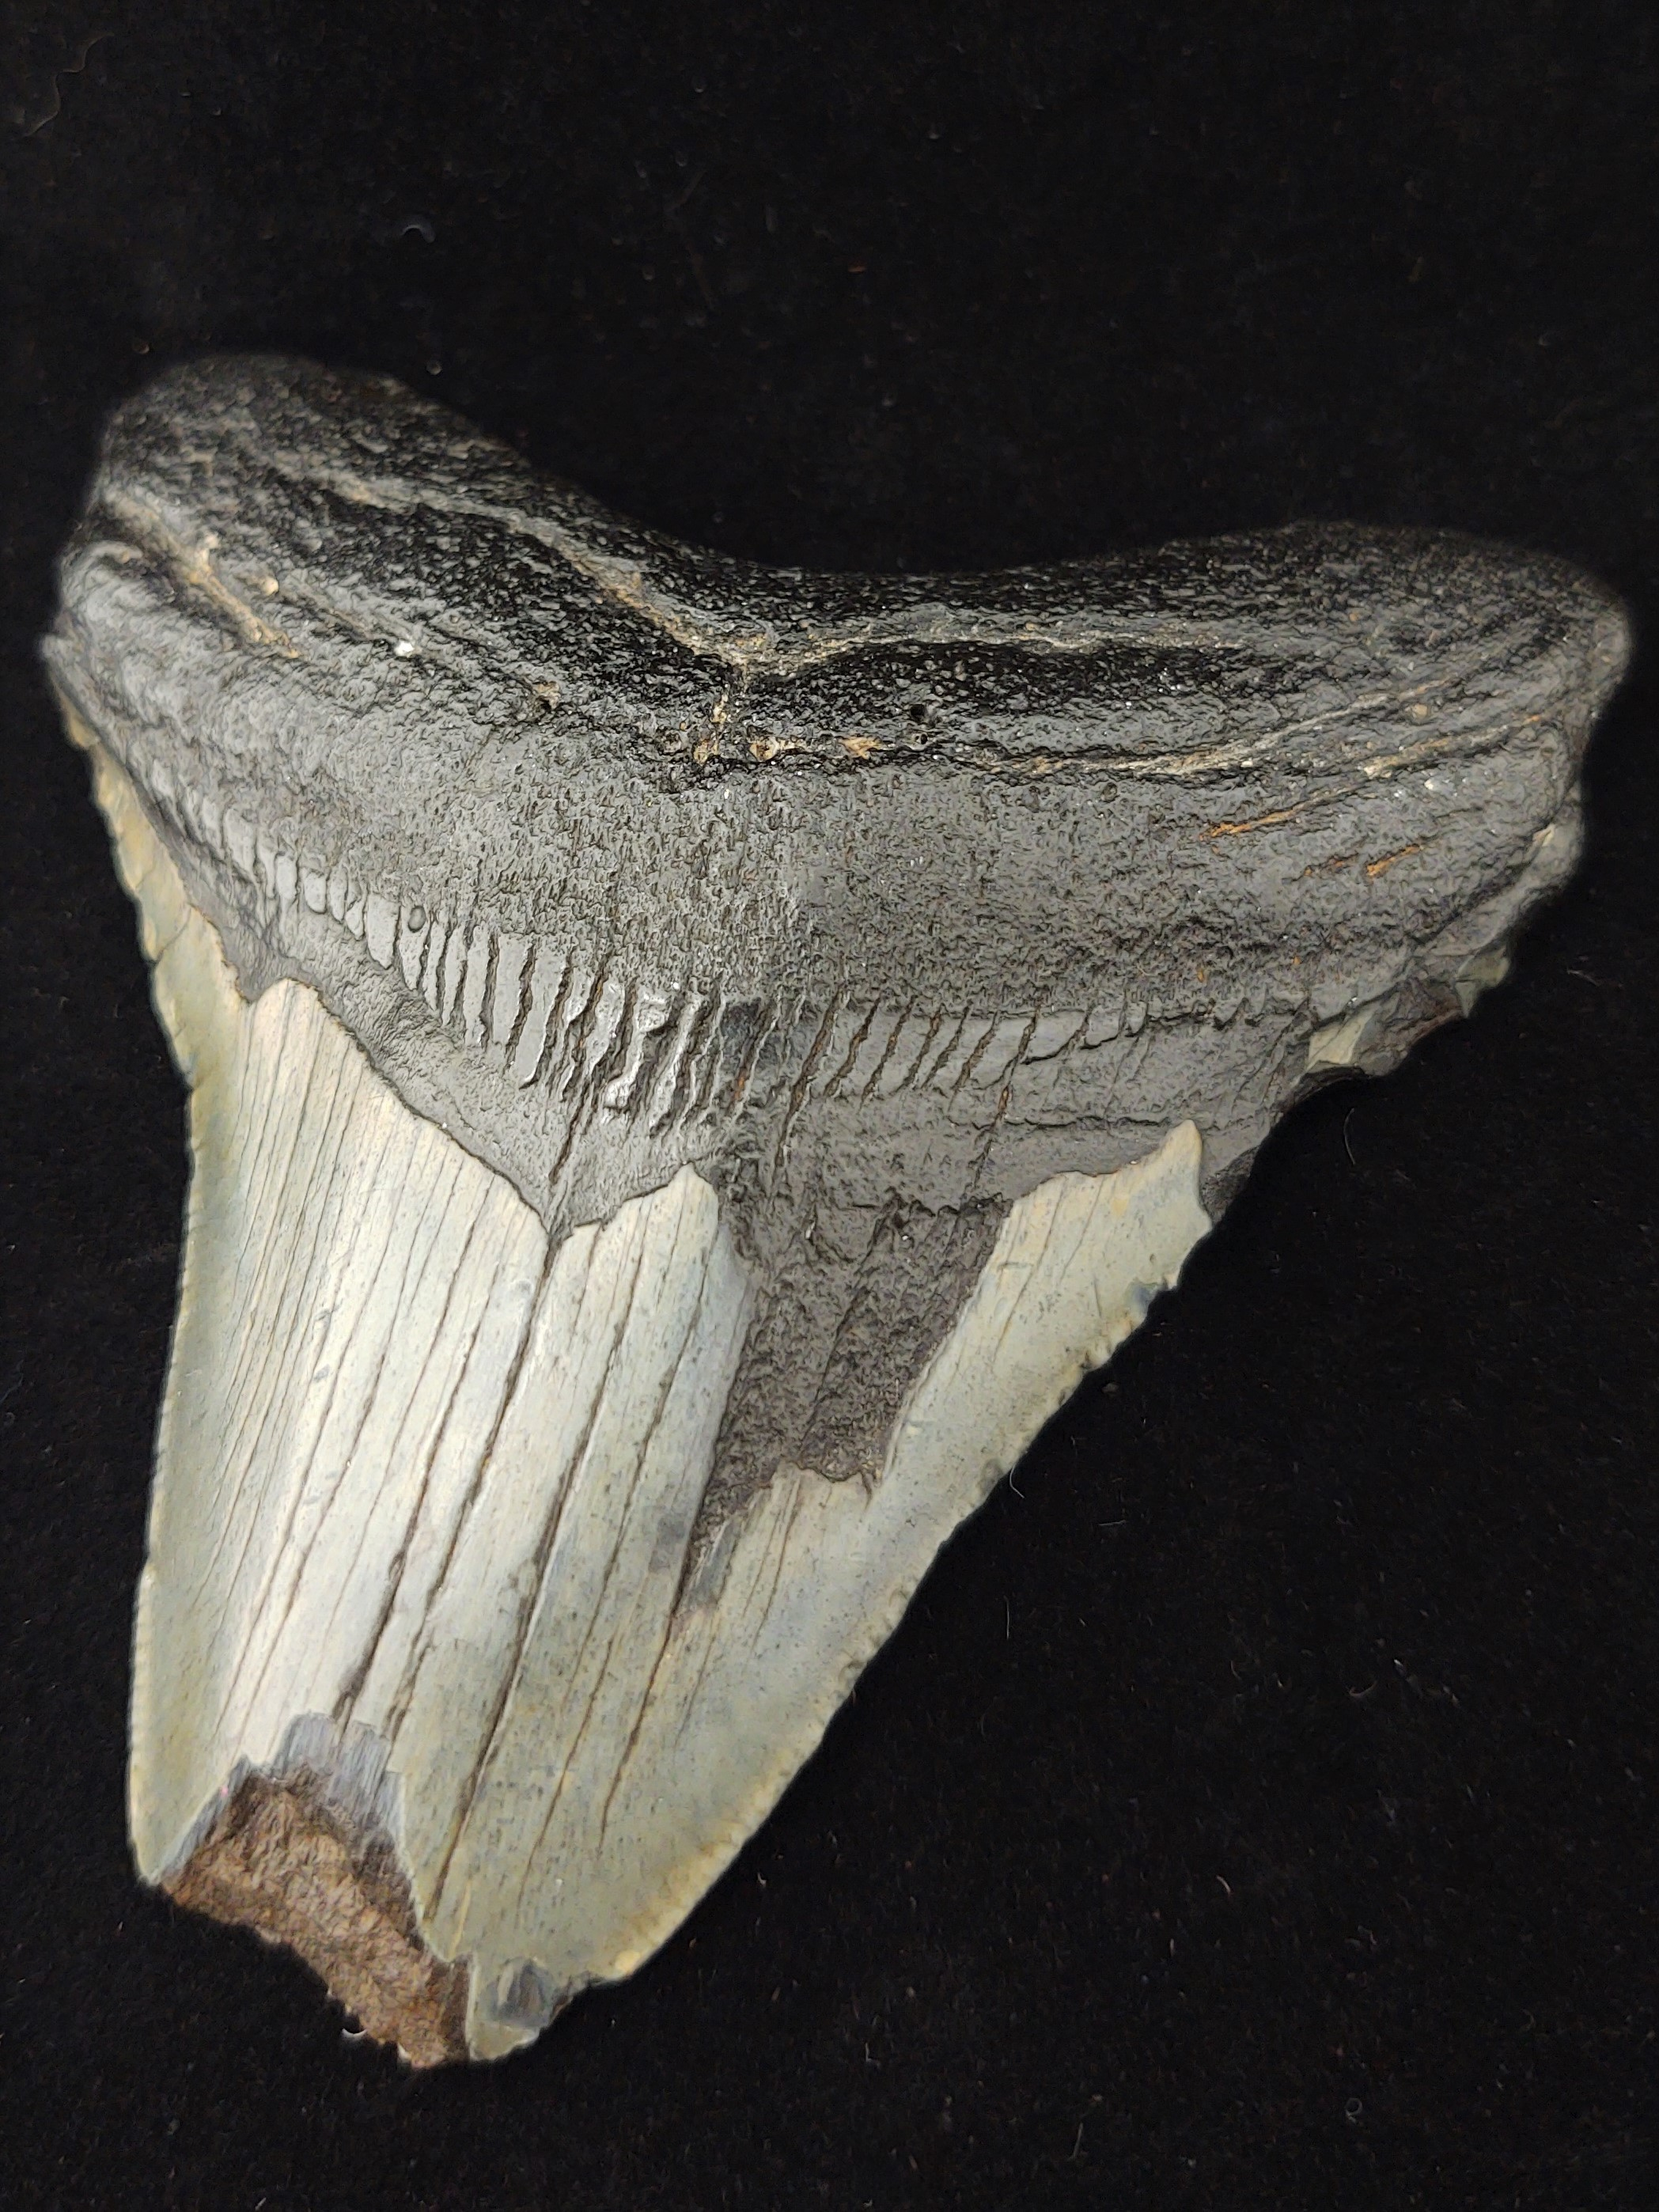 A sharp fossil tooth